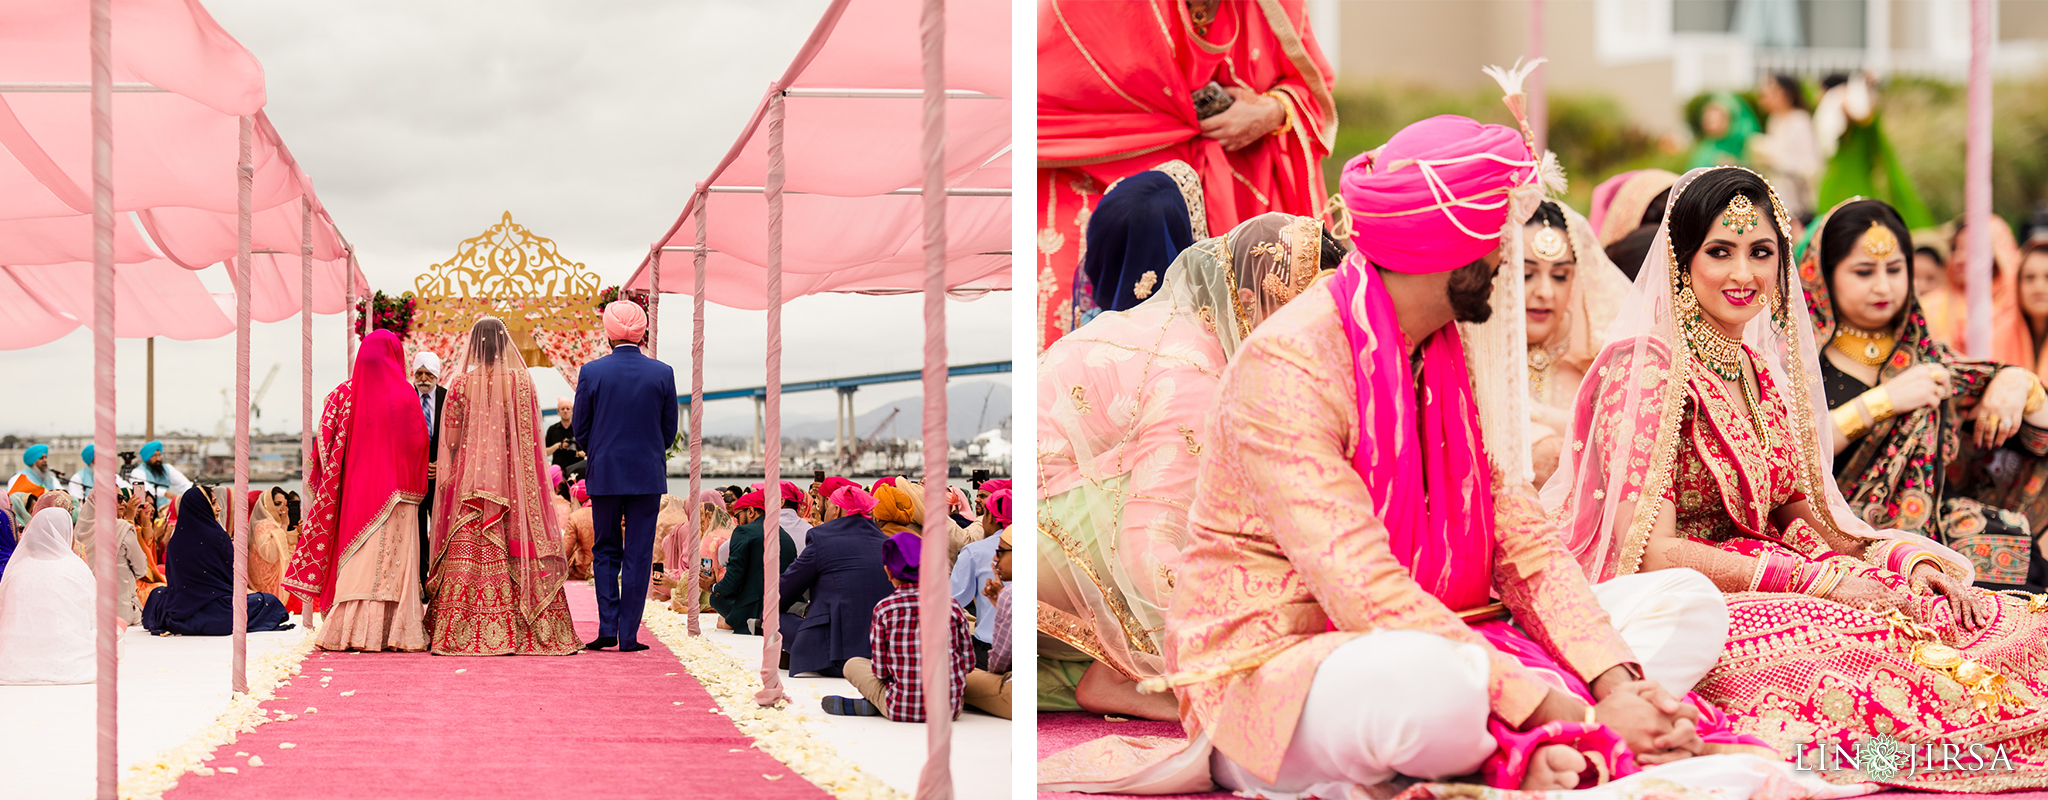 17 Coronado Resort and Spa San Diego Punjabi Wedding Photography